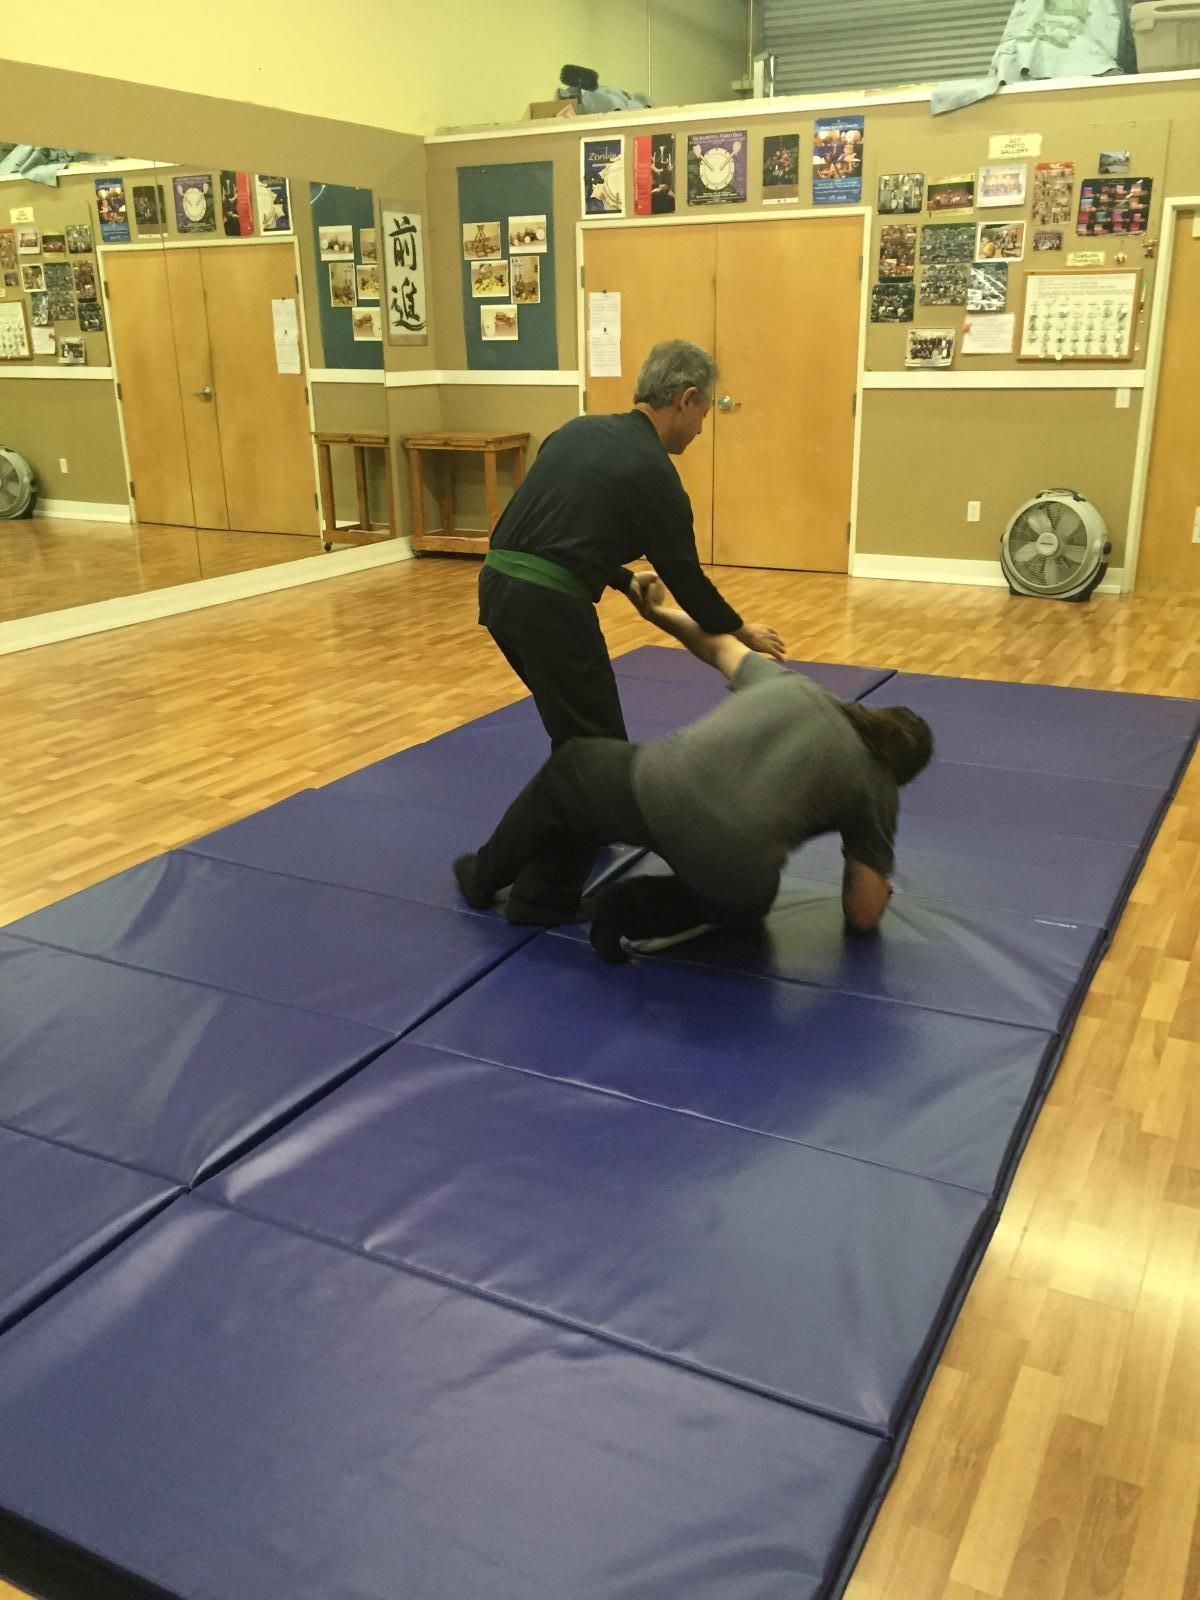 Discount Gym Mats For Sale Home Exercise Kids Tumbling And Wrestling Gym Mats Folding Gym Mat Floor Workouts